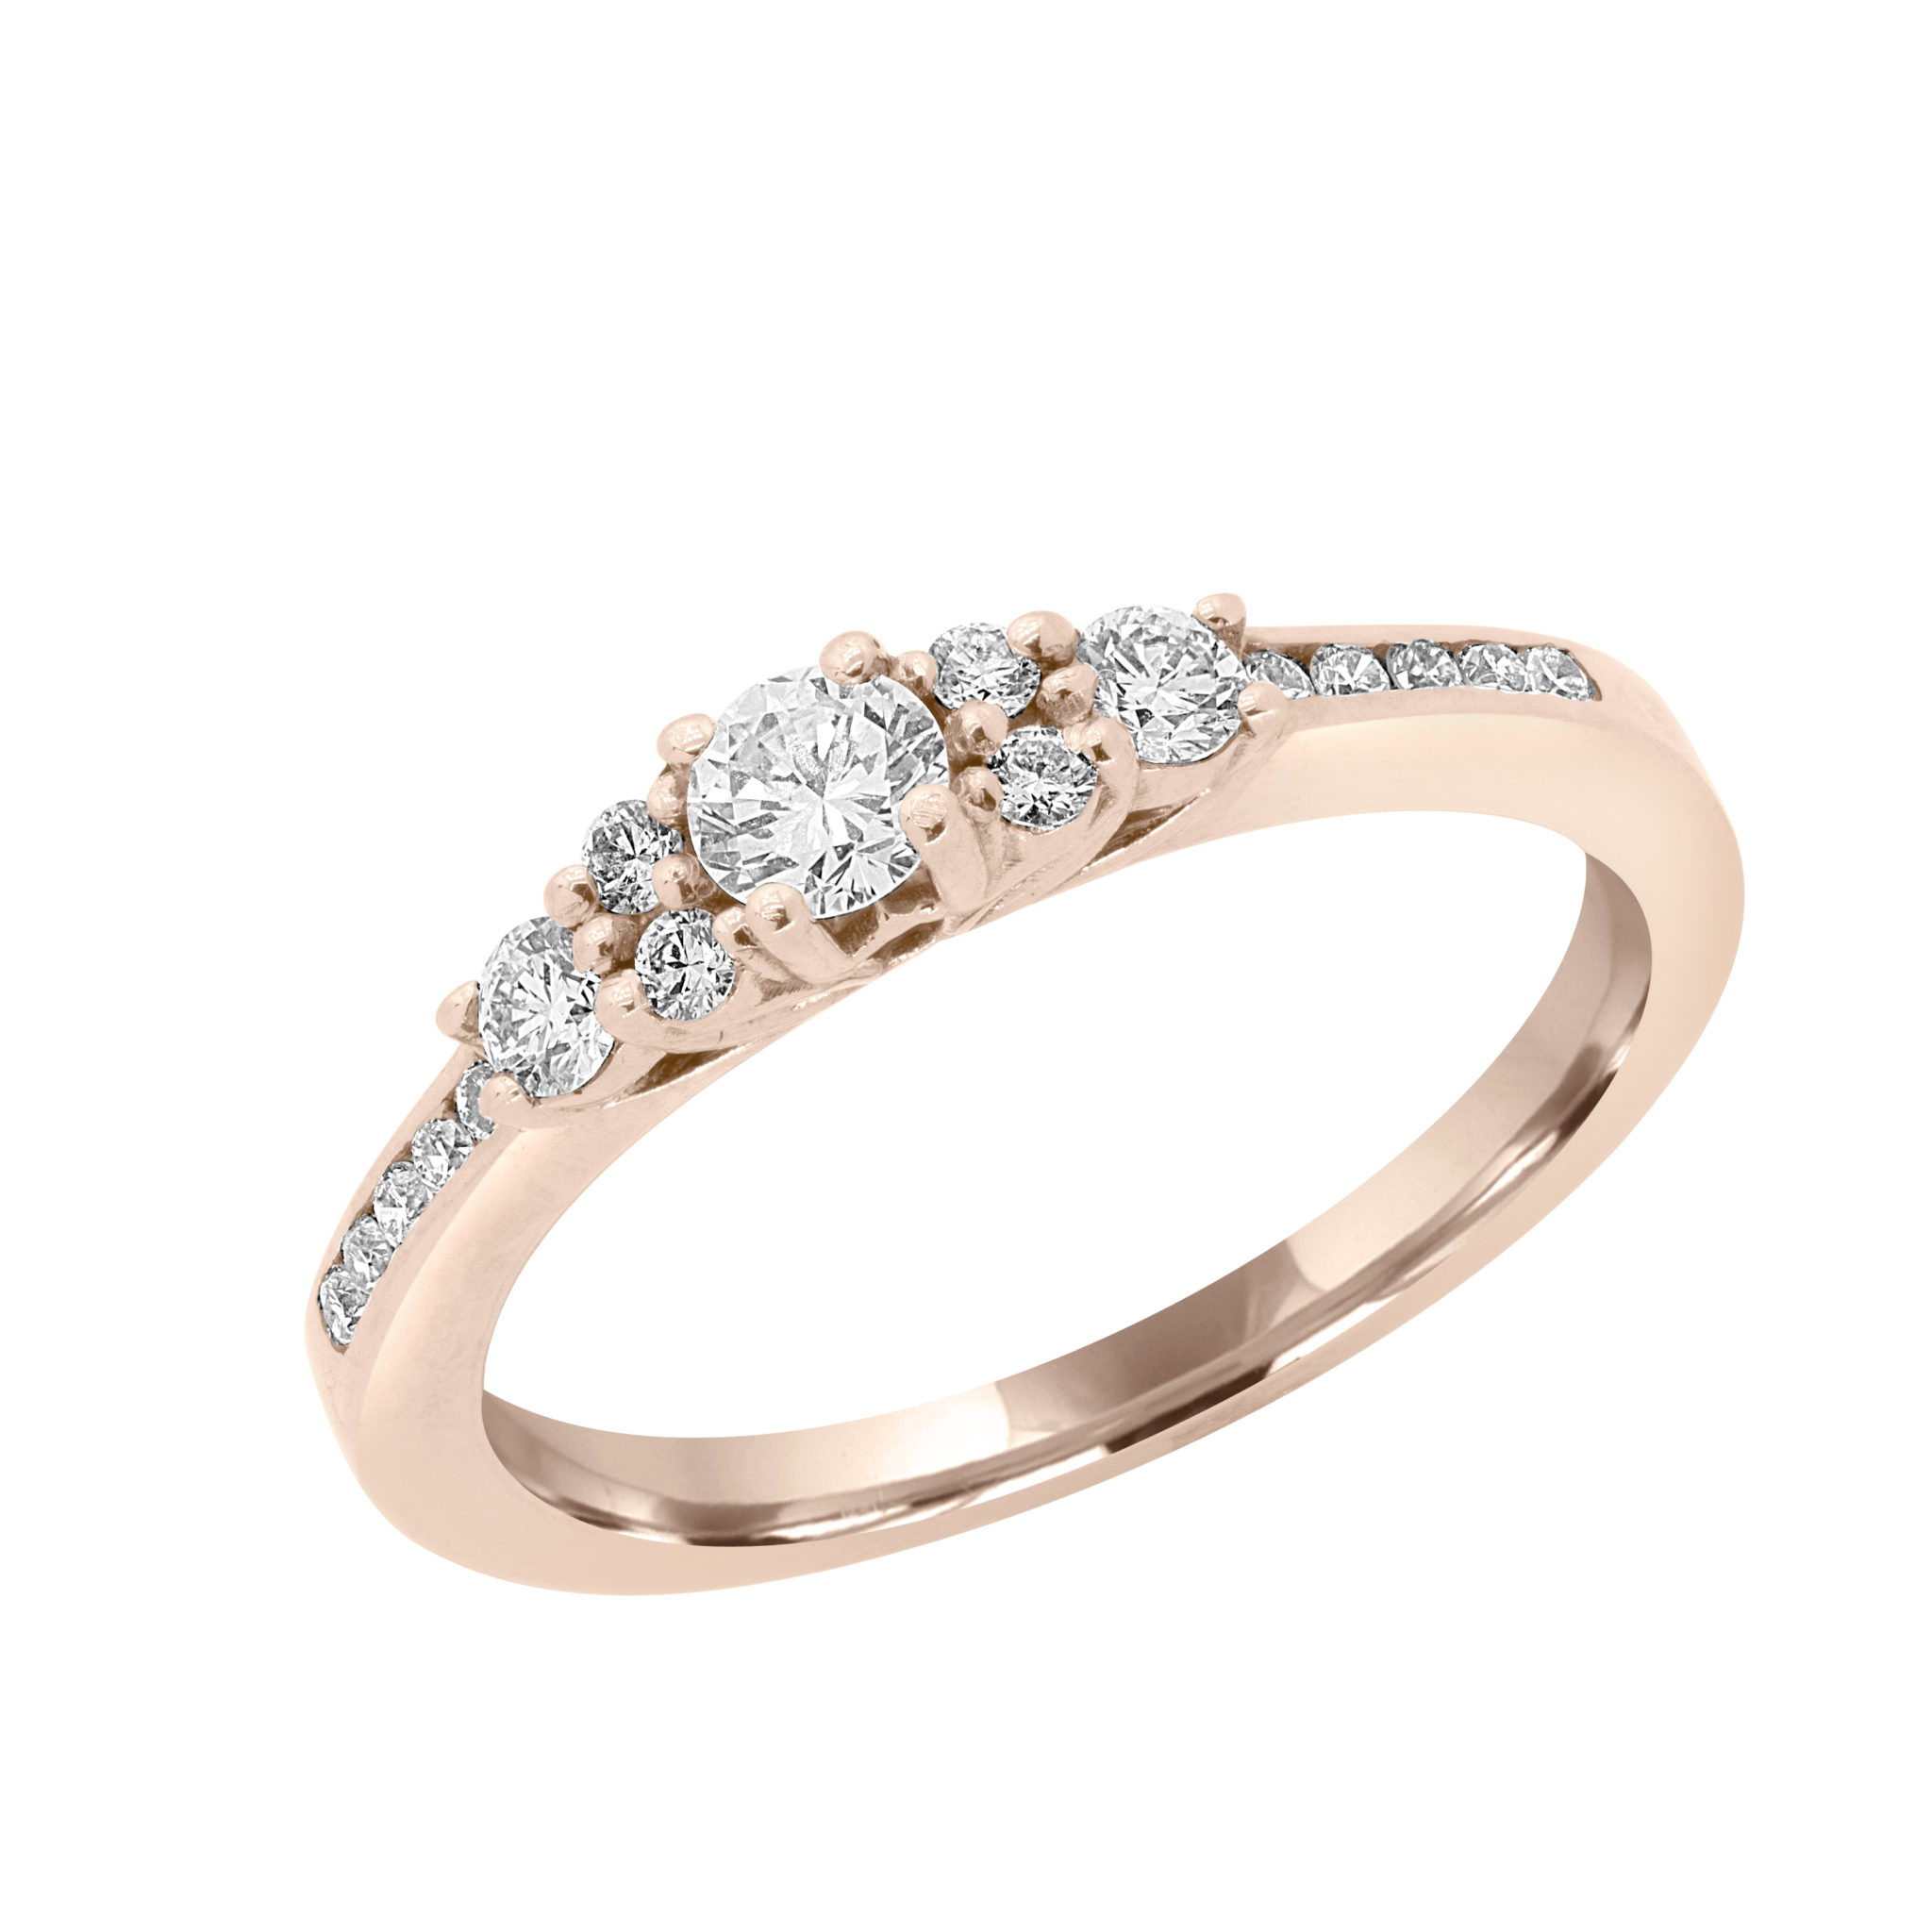 14k rose gold 0.42 ct diamonds engagement anniversary ring